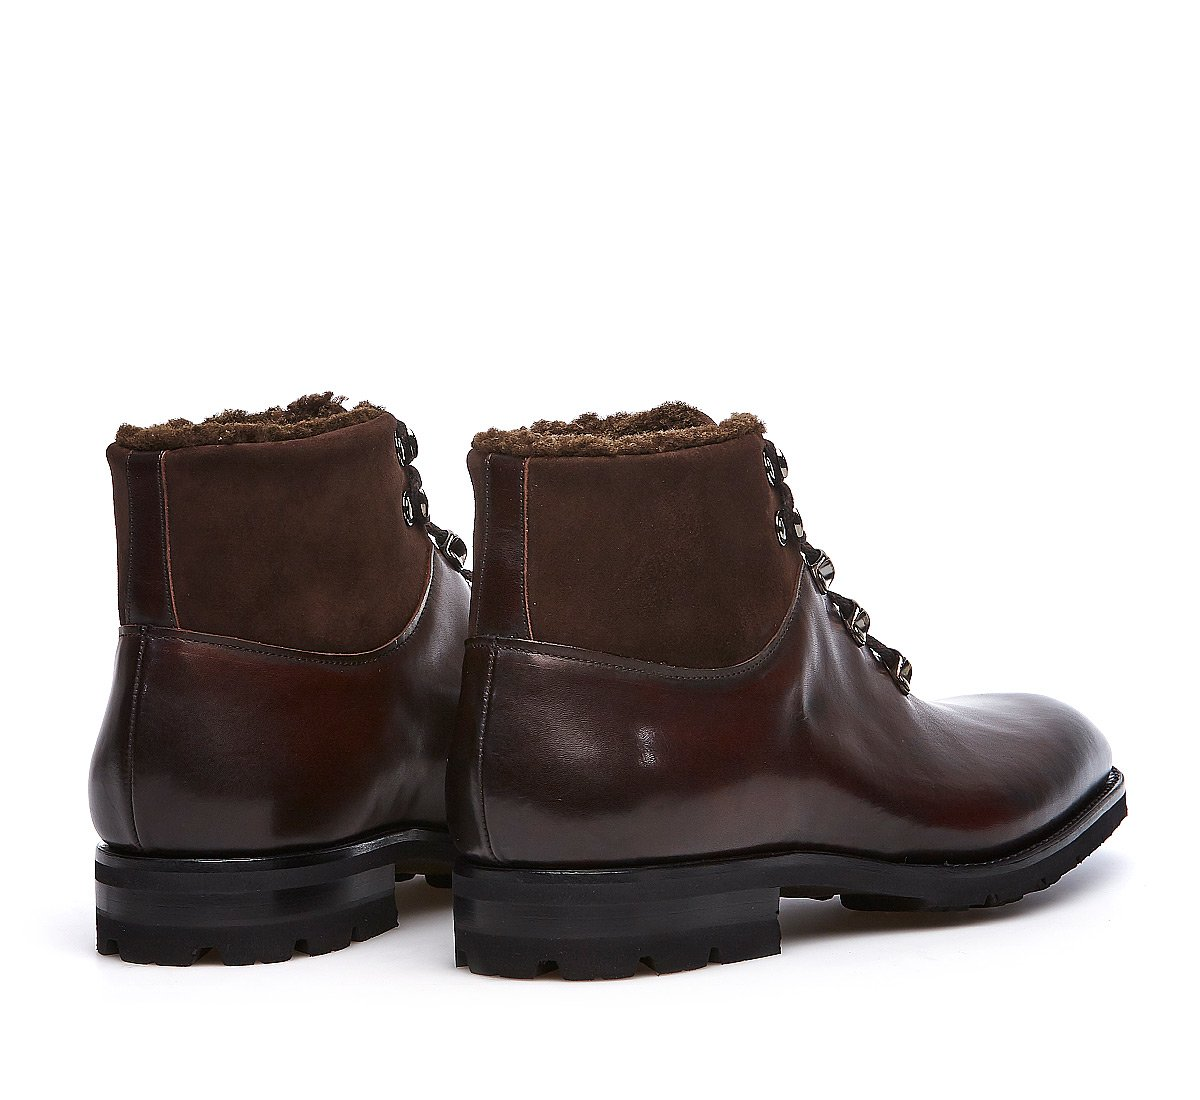 Trekking boots Flex Goodyear in calf leather with wool lining